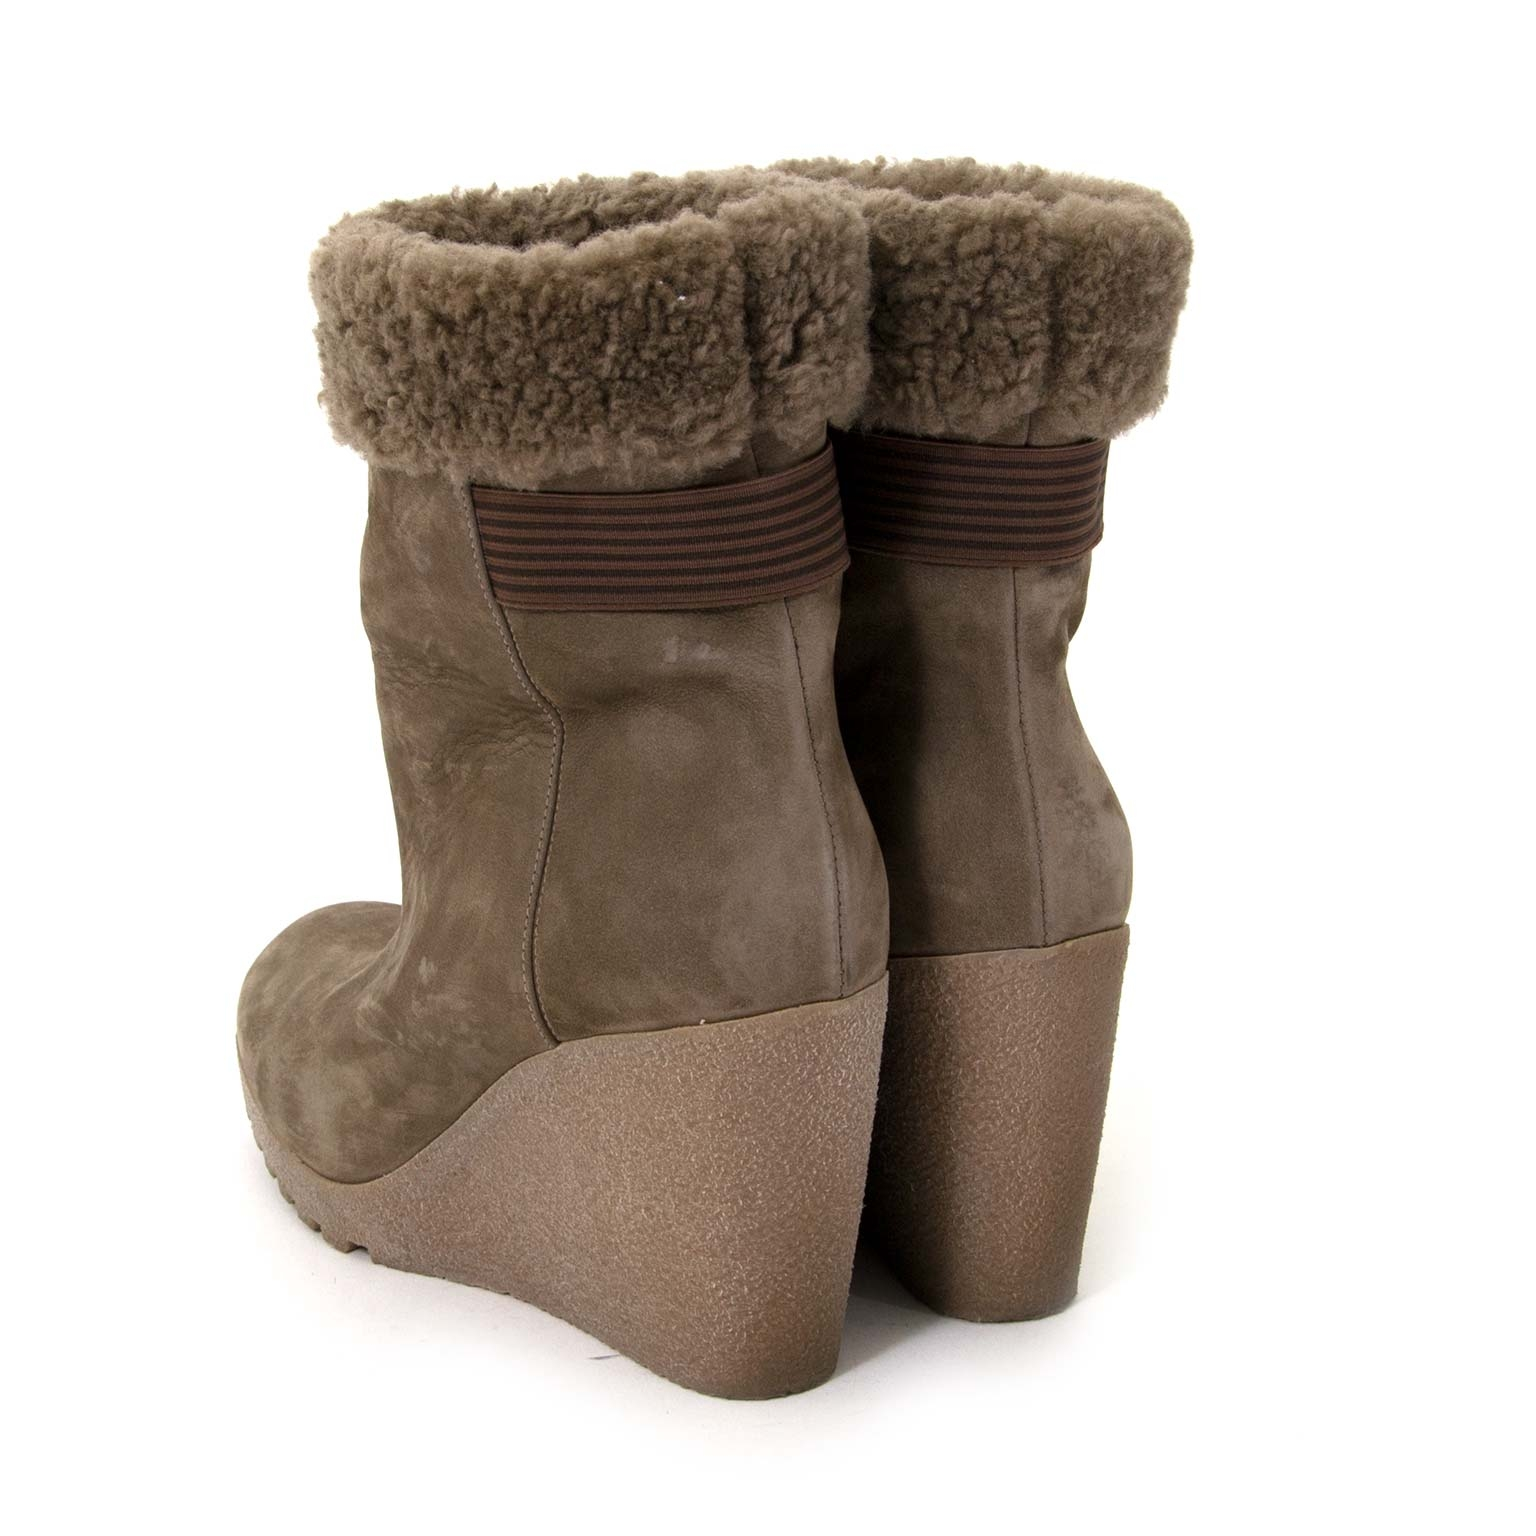 Winter fashion 2019 done right in these Fendi Taupe Mouton Wedges